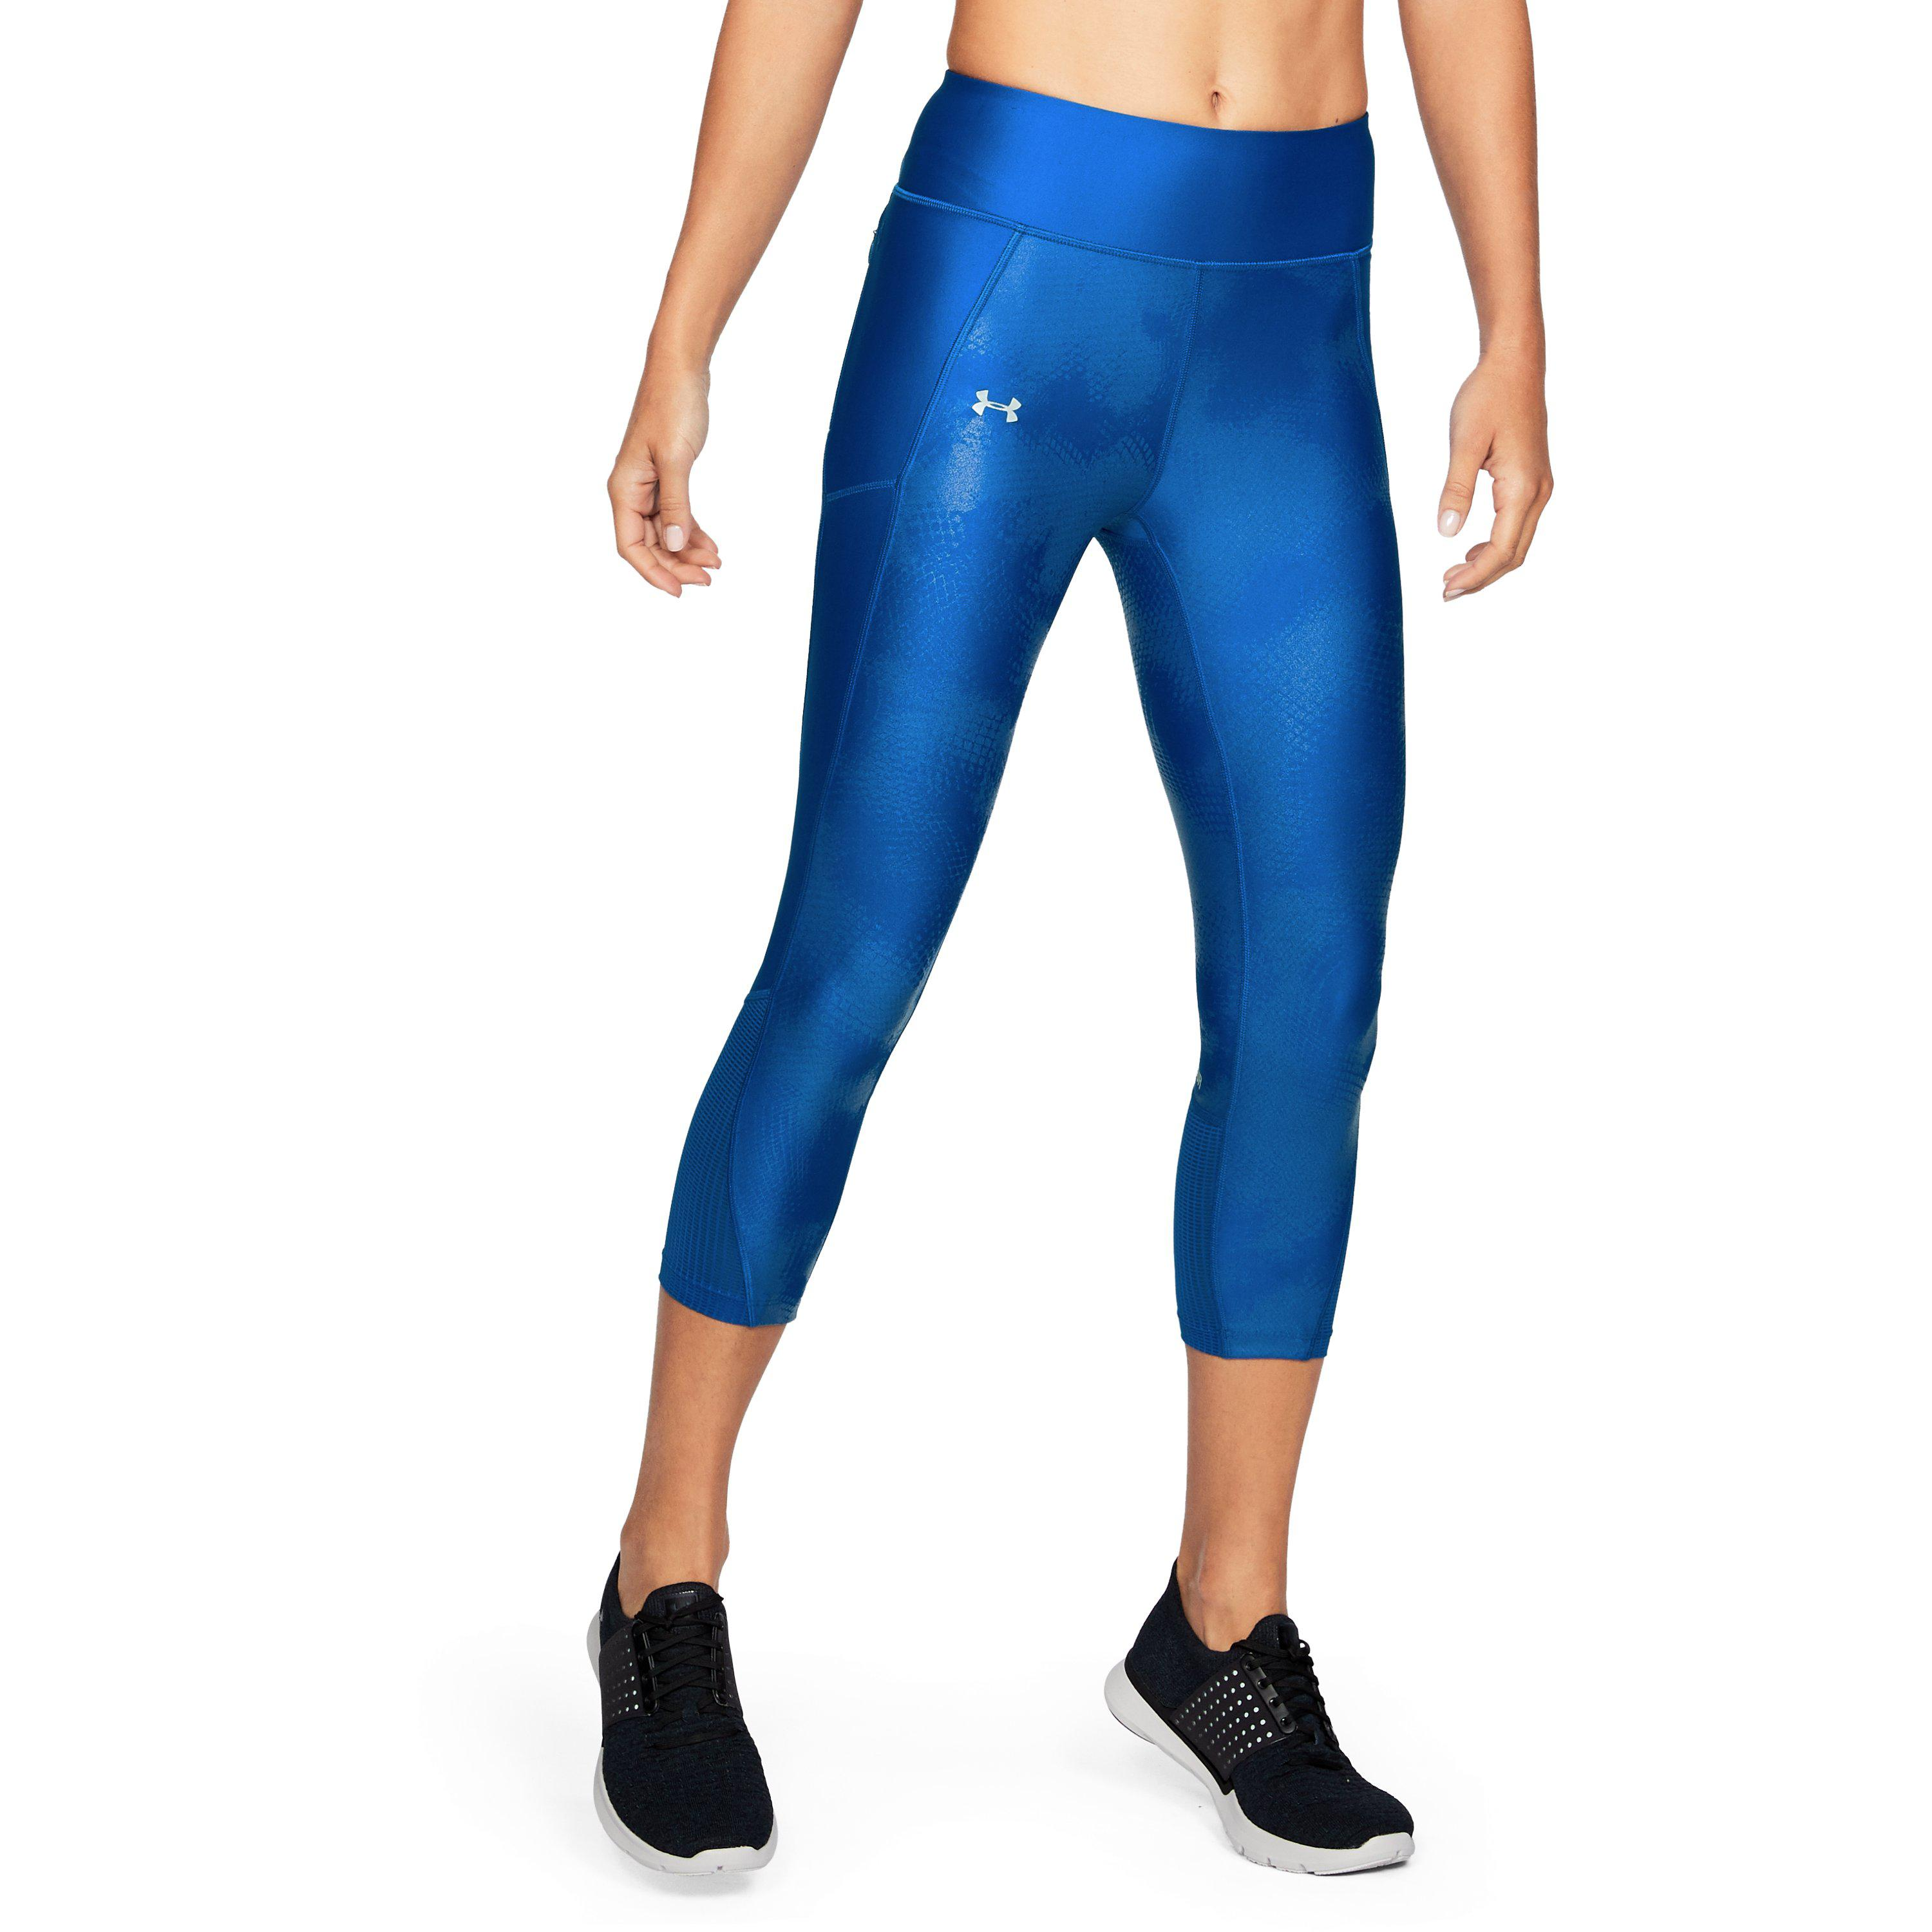 23d17df8c57ccc Under Armour Women's Ua Fly-by Printed Capris in Blue - Lyst